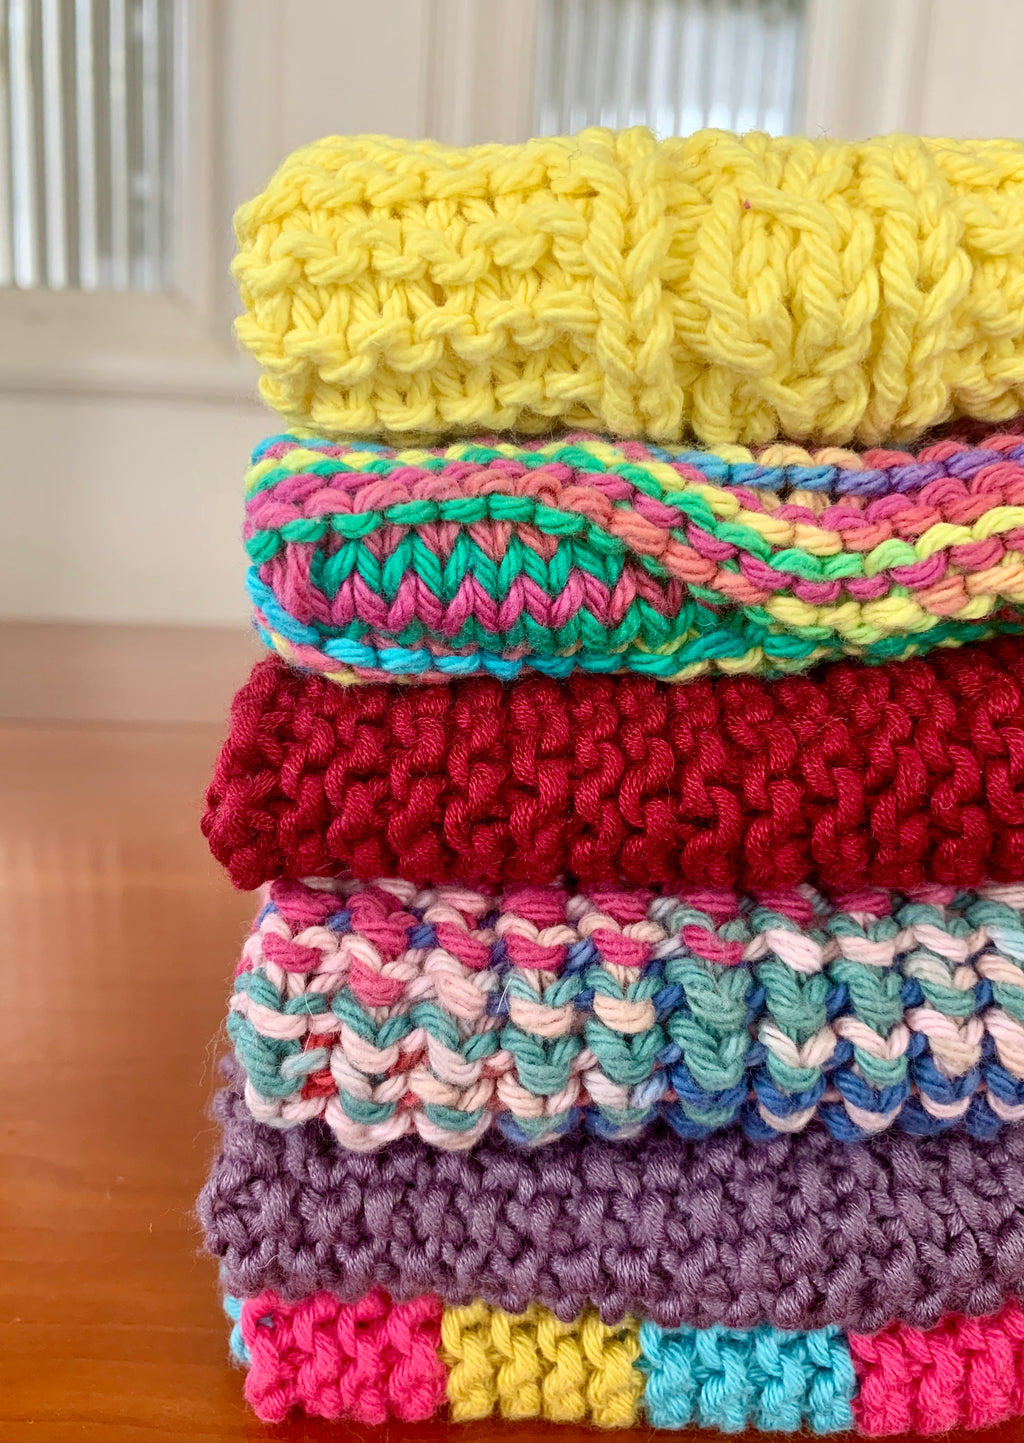 Beginners Knitting - Simple Series, Thursday 25th June 5.30-7pm